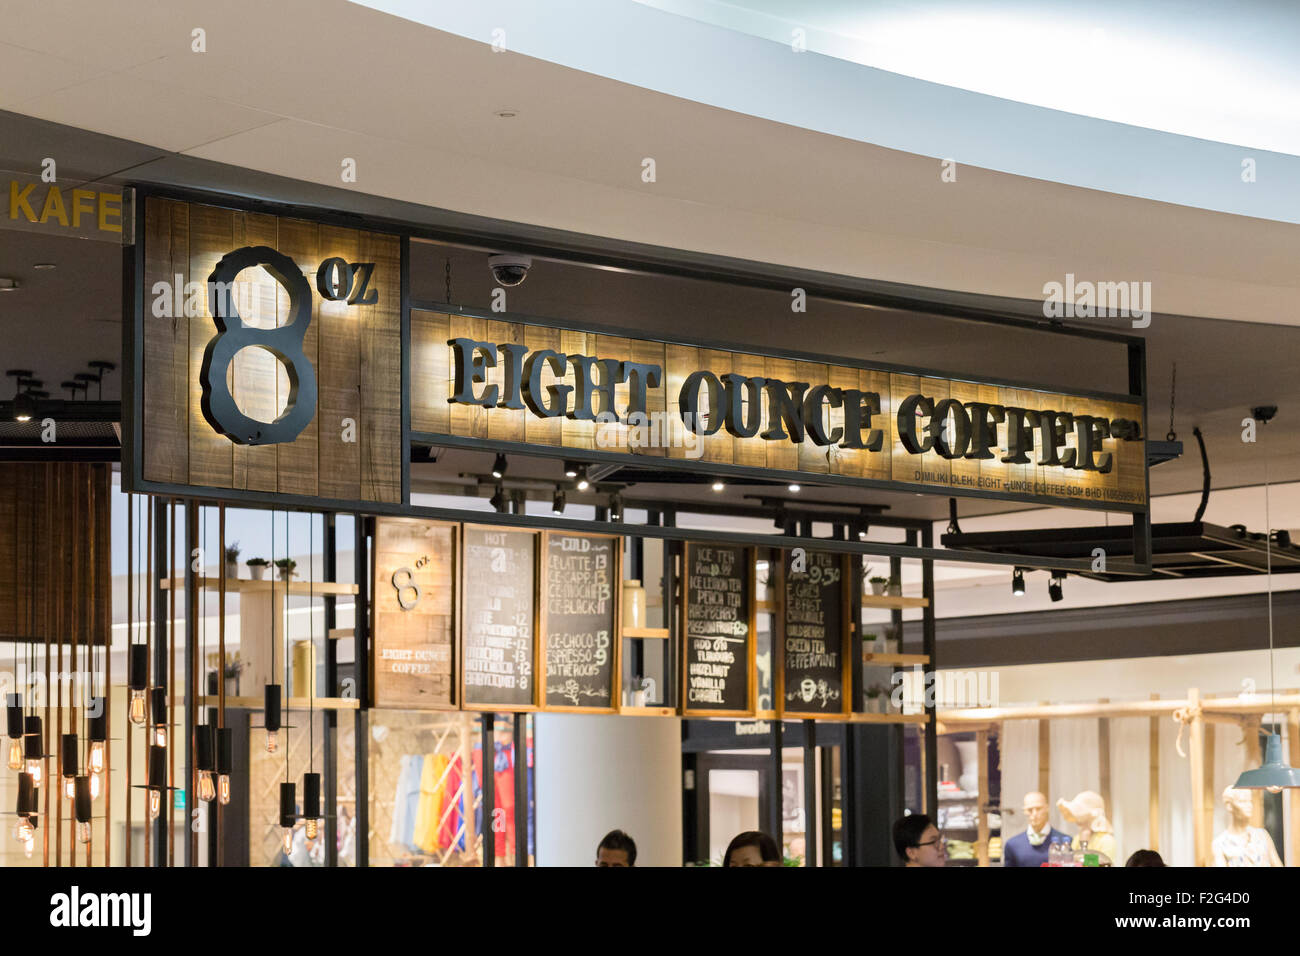 Eight ounce coffee store - Stock Image